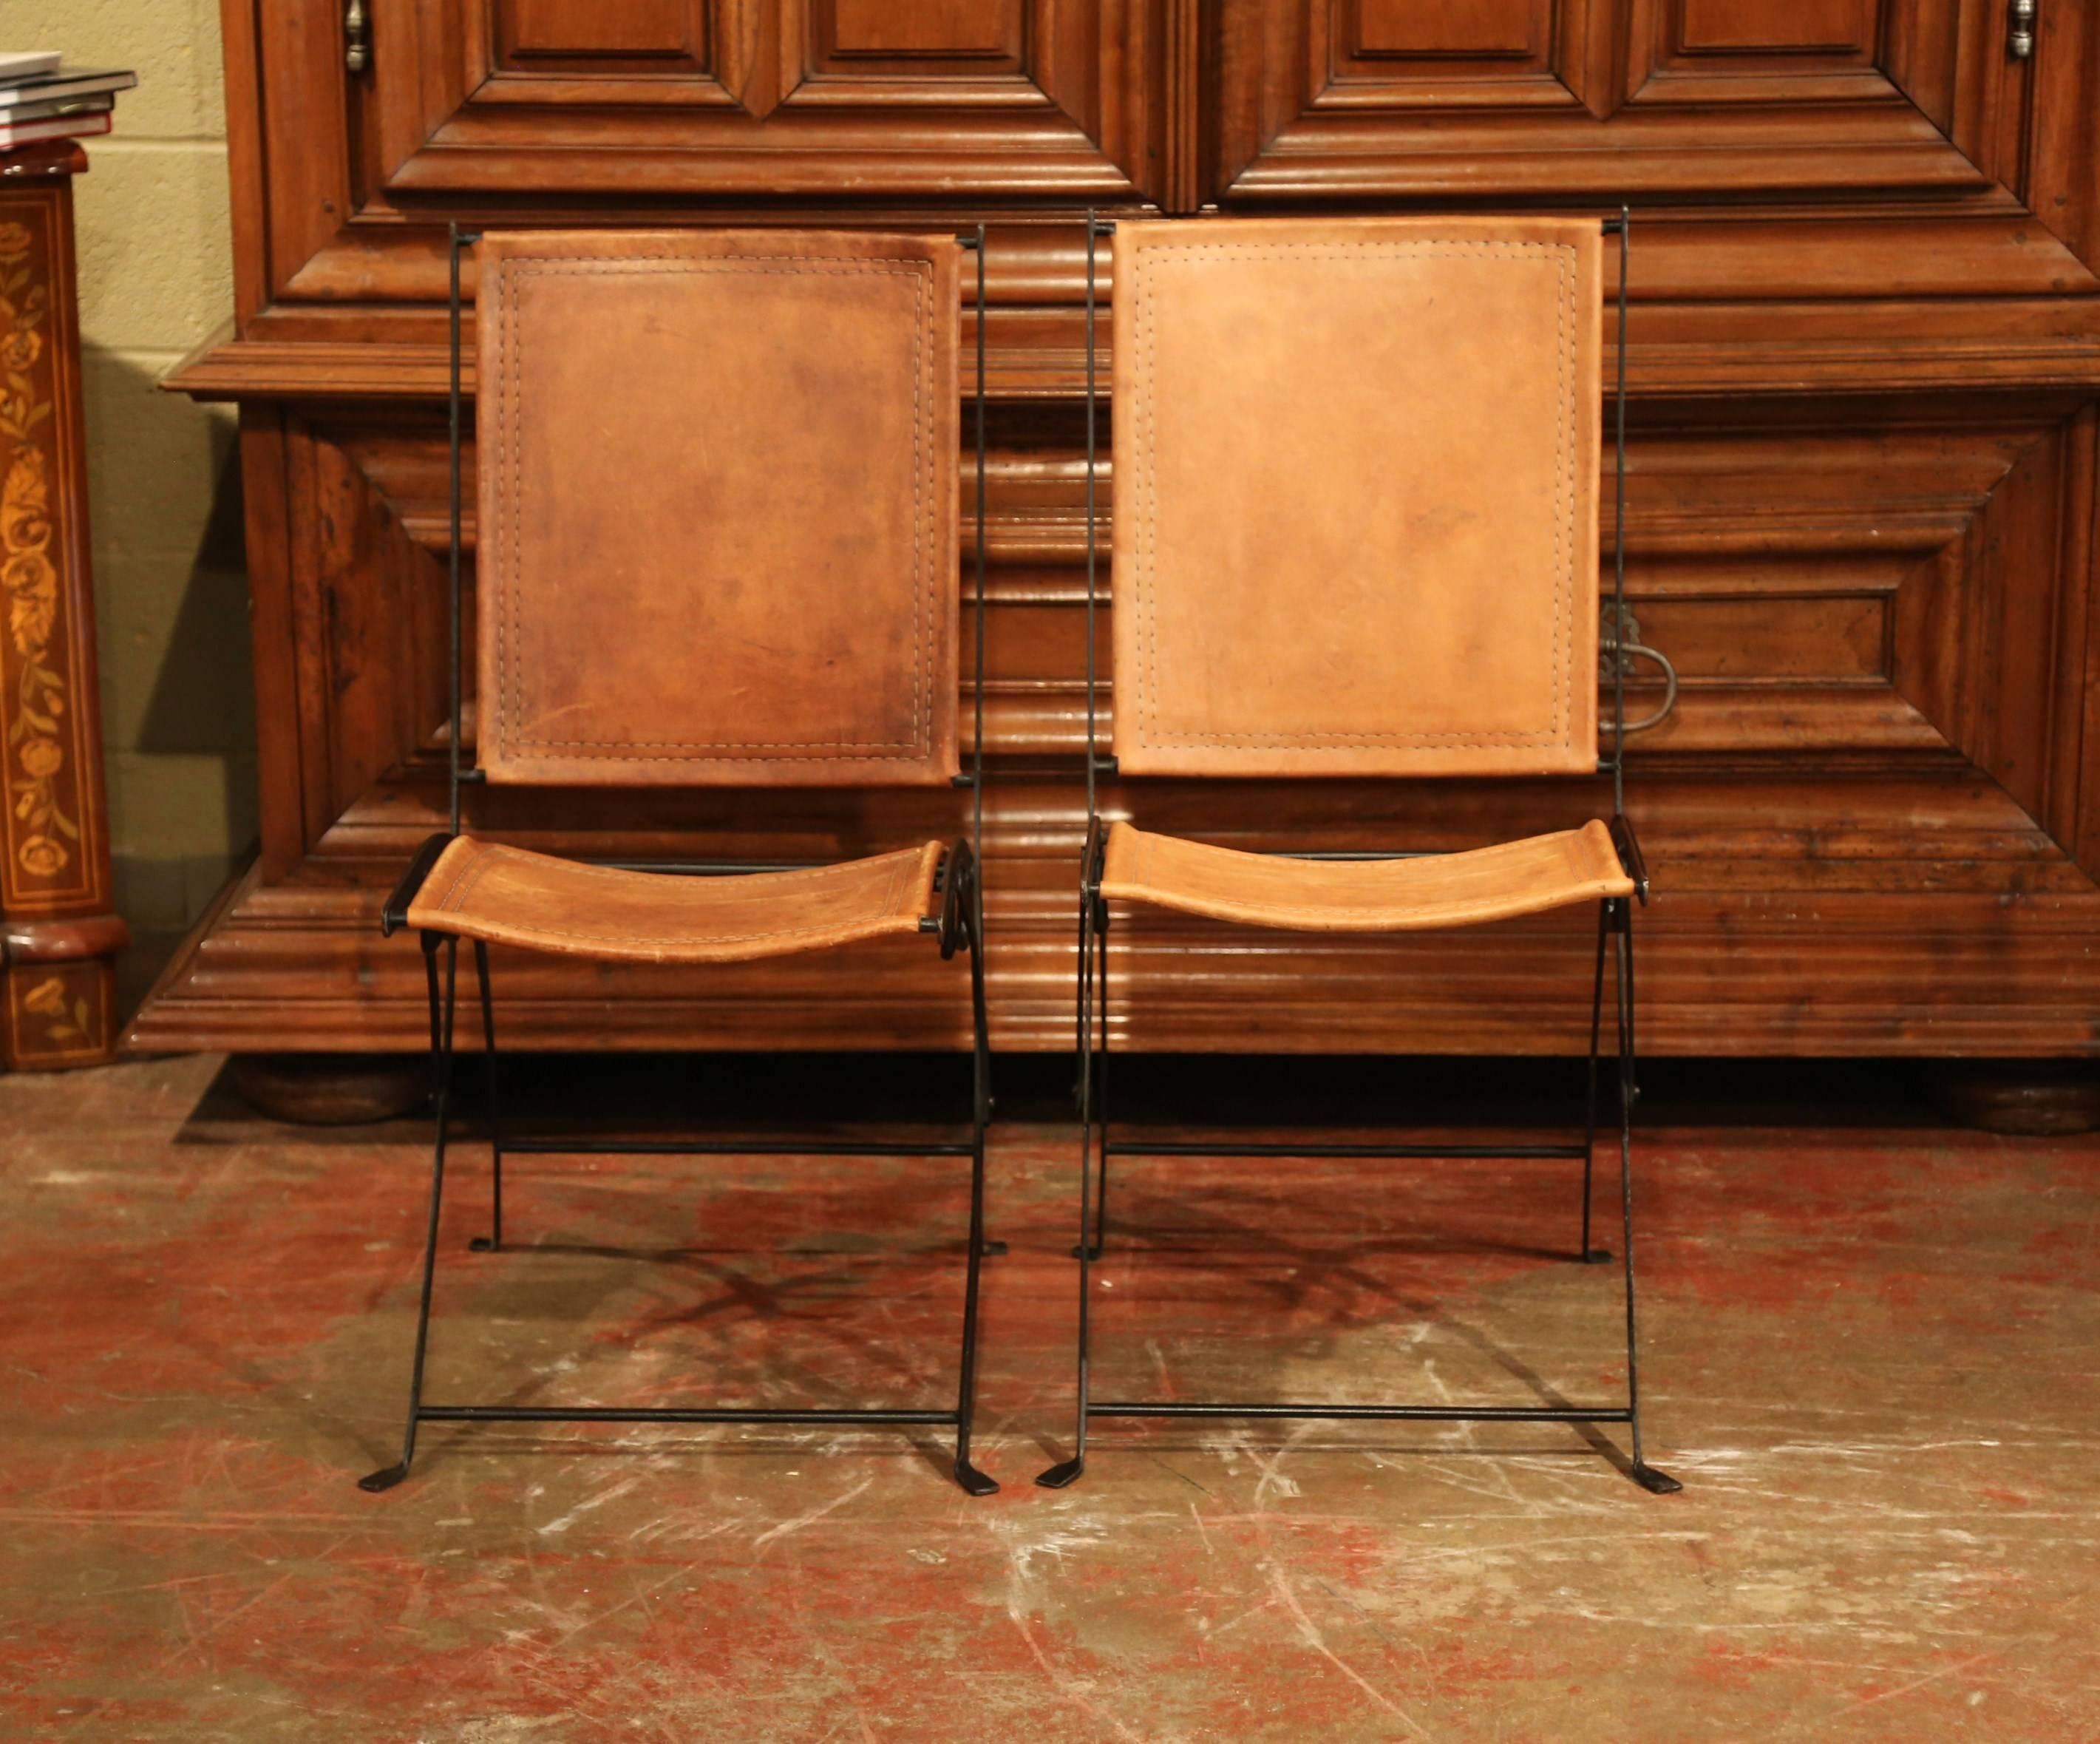 Pair Of Mid 20th Century French Iron And Leather Folding